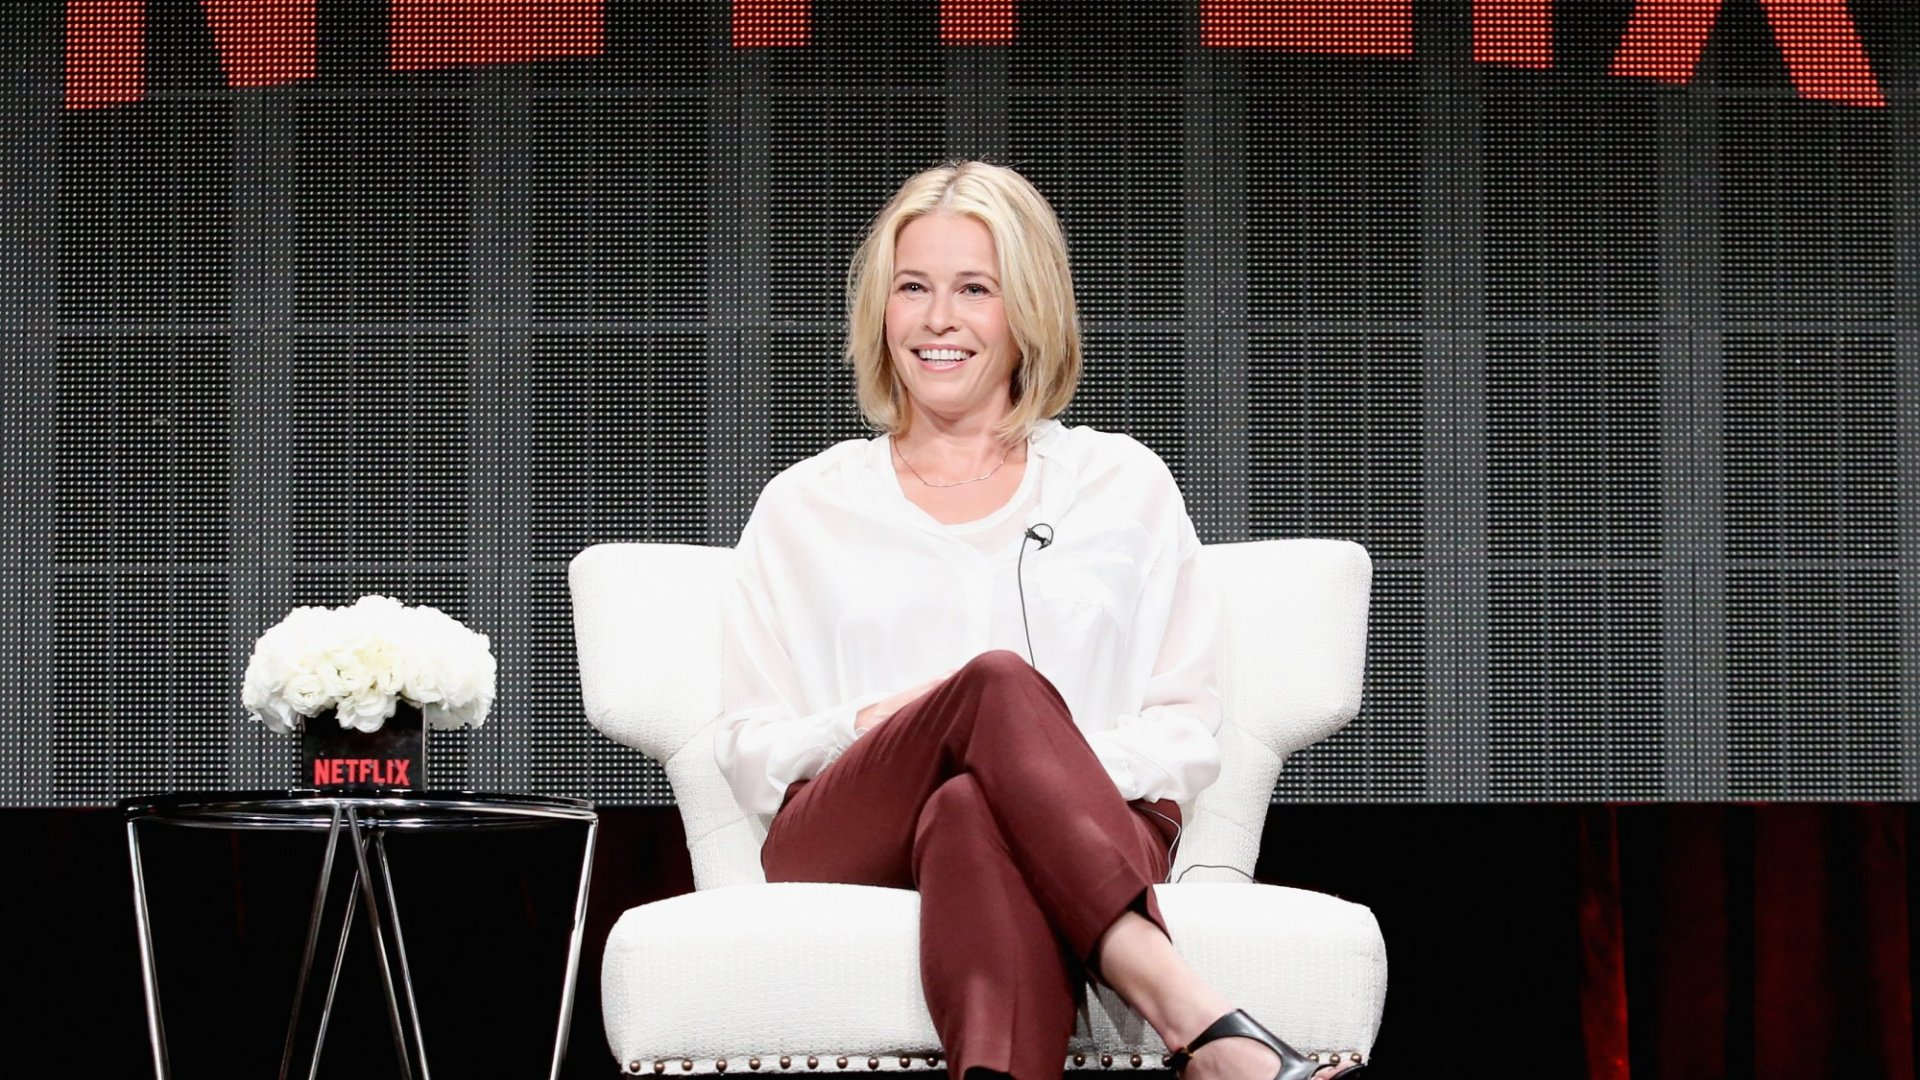 Every Morning, Millionaire Chelsea Handler Spends 20 Minutes Doing This